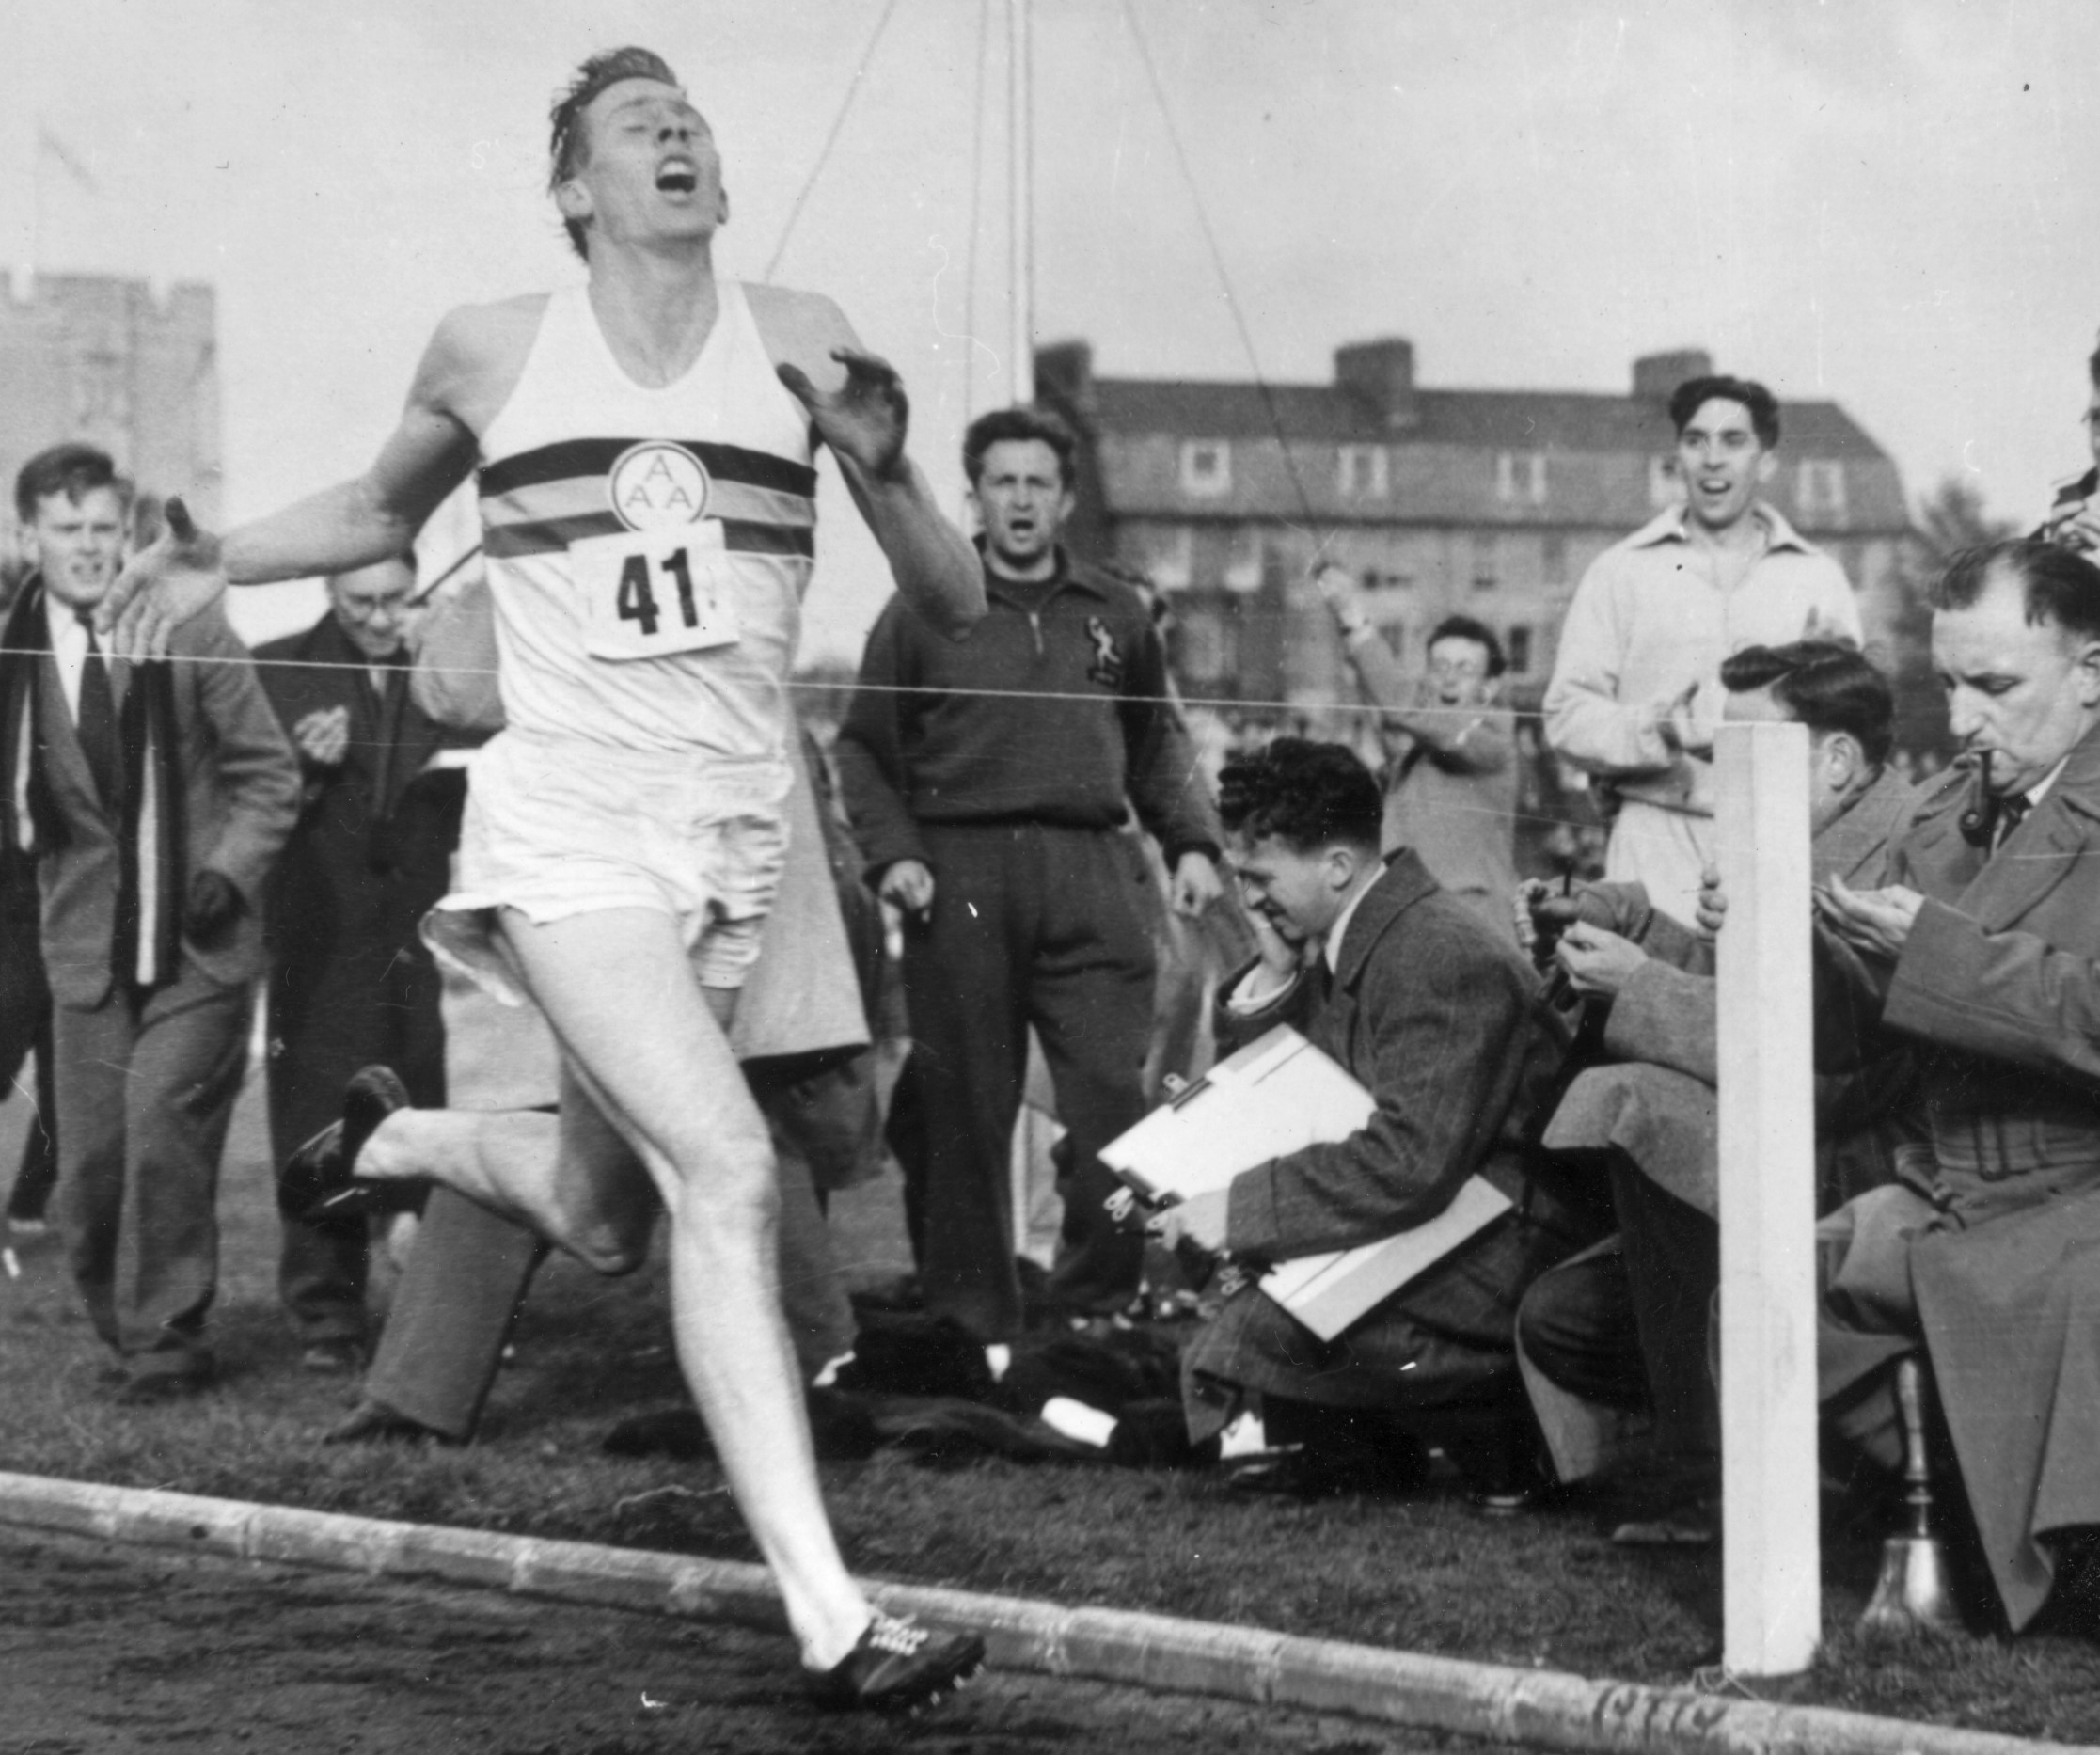 Roger Bannister about to cross the tape at the end of his record breaking mile run at Iffley Road, Oxford. He was the first person to run the mile in under four minutes, with a time of 3 minutes 59.4 seconds. (Photo by Norman Potter/Central Press/Getty Images)